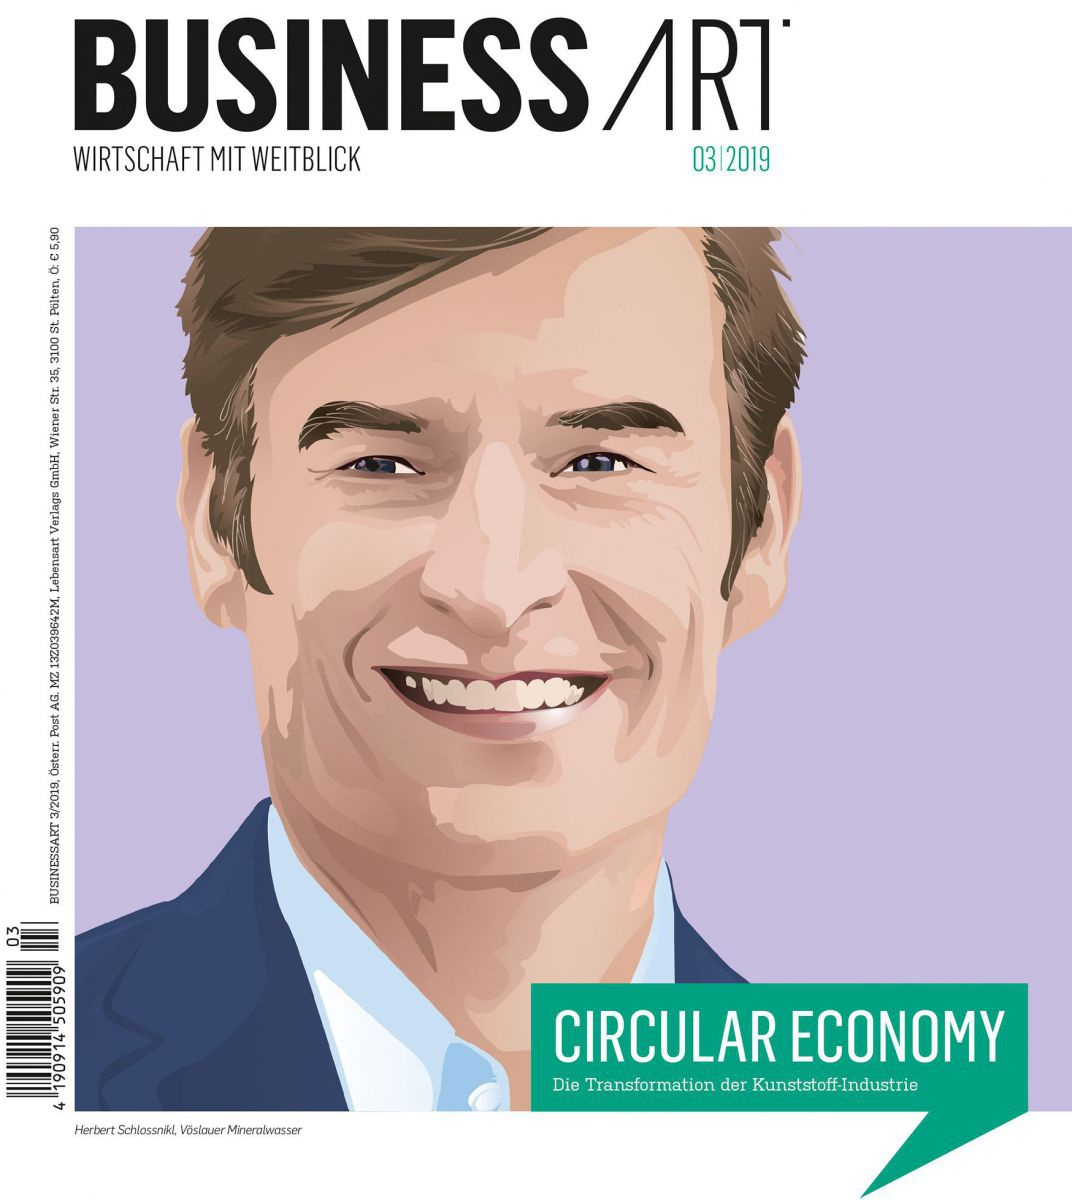 Herbert Schlossnikl am Cover der BUSINESSART